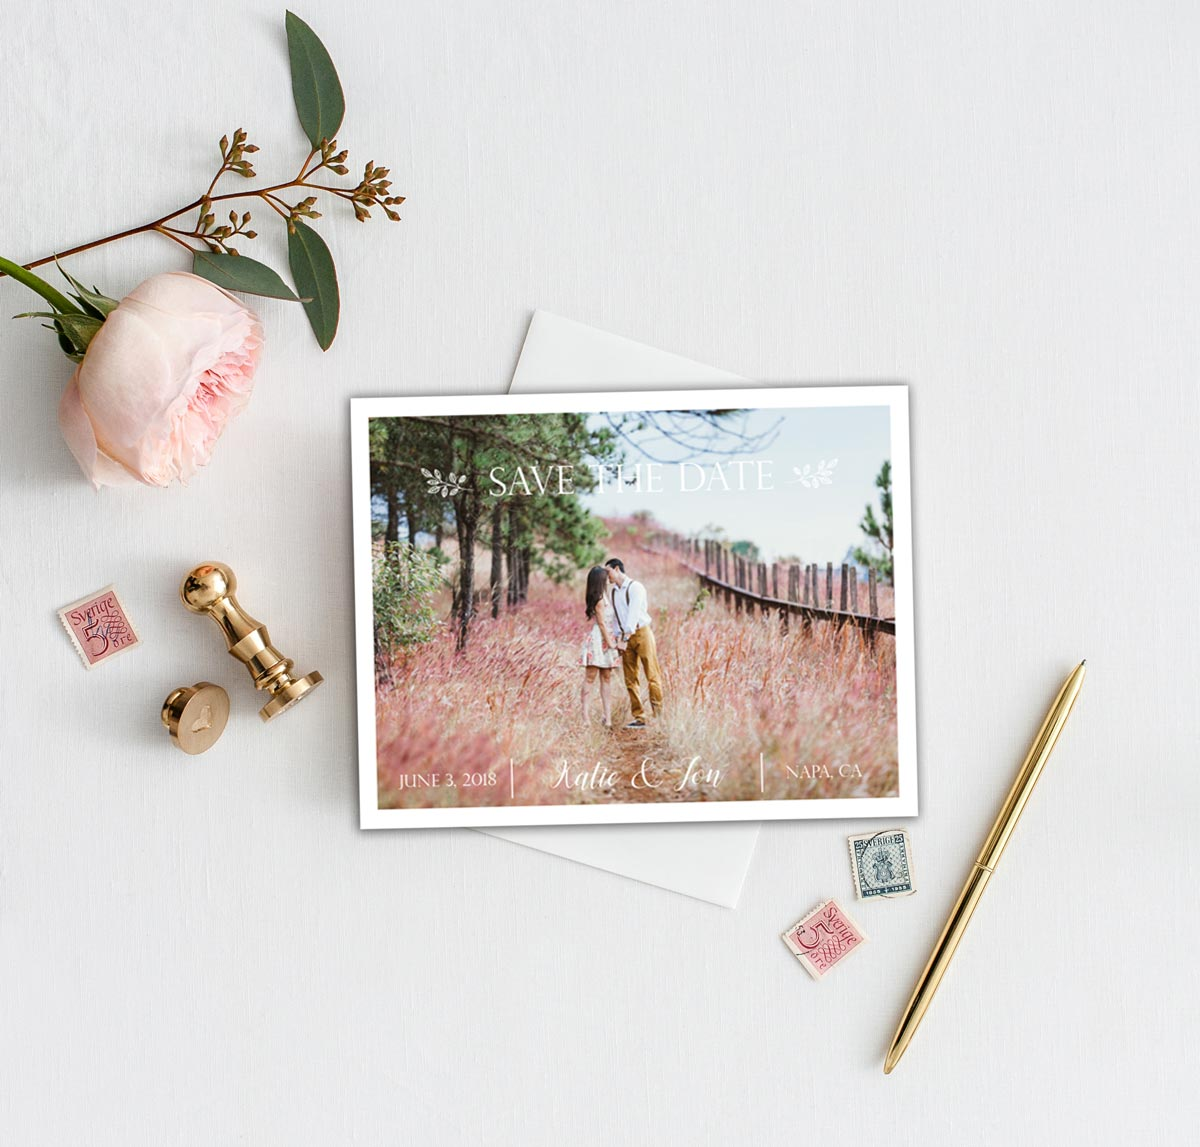 17030-little-branch-save-the-date-photo-card-4